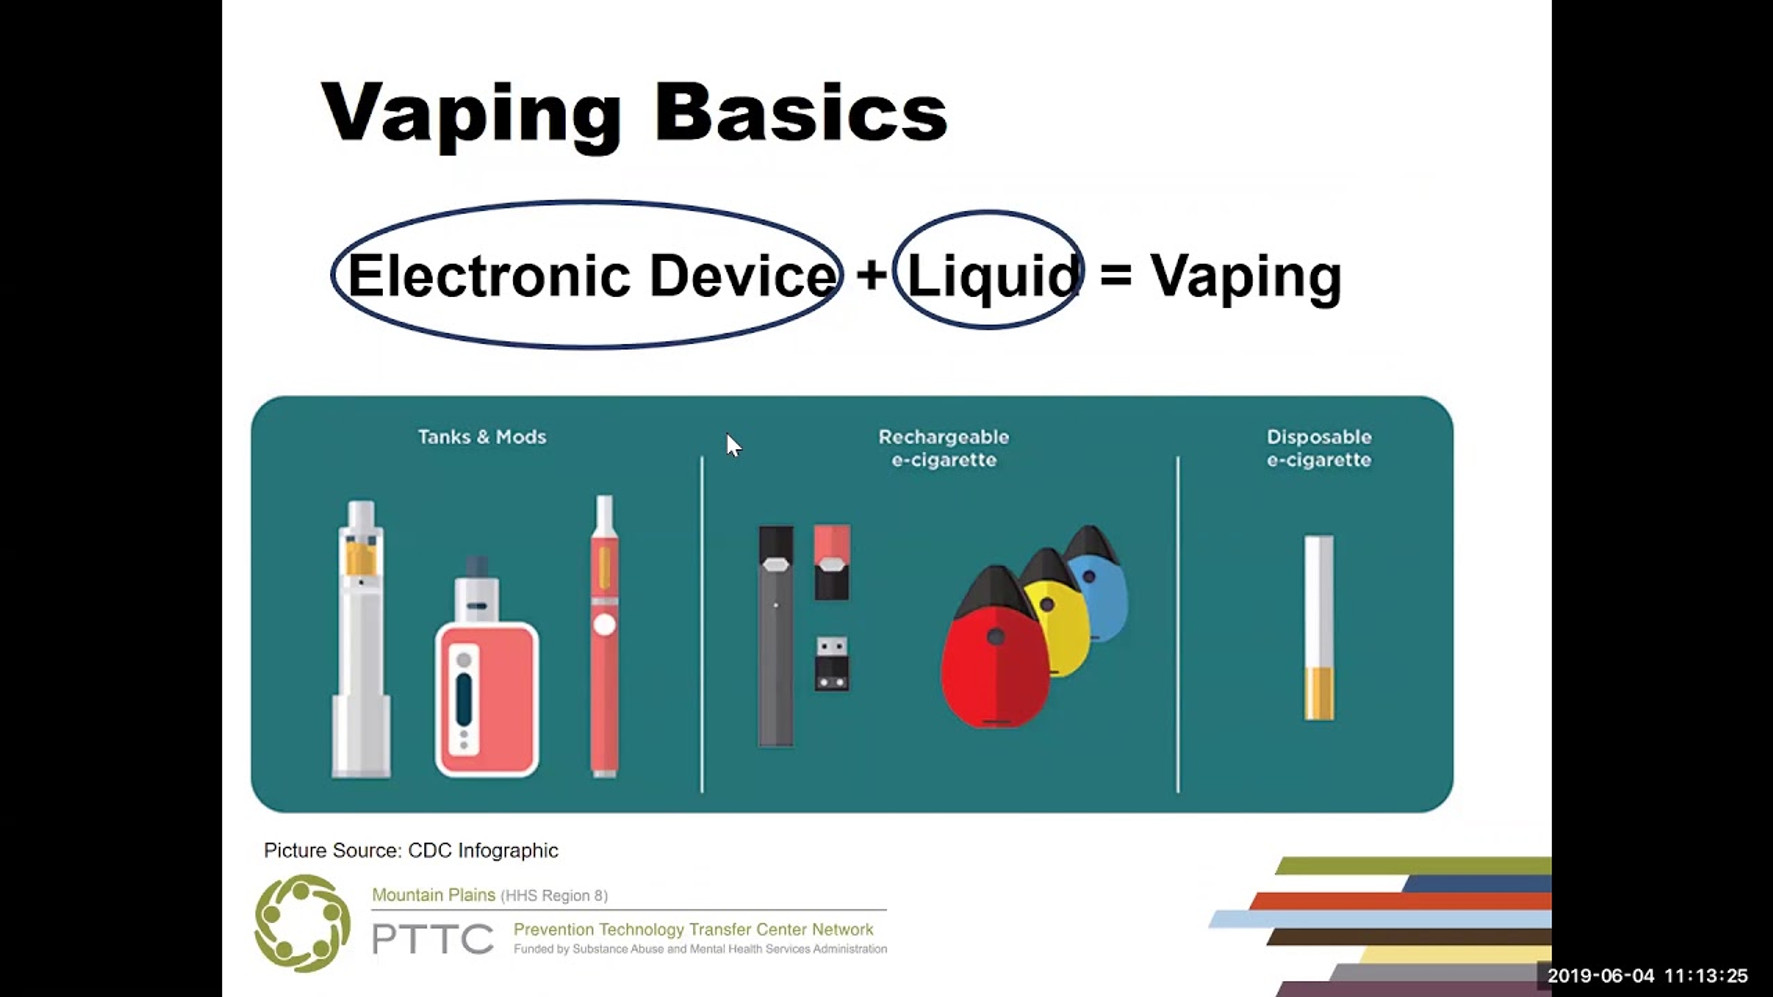 Vaping Among Adolescents - What We Know and What We Don't